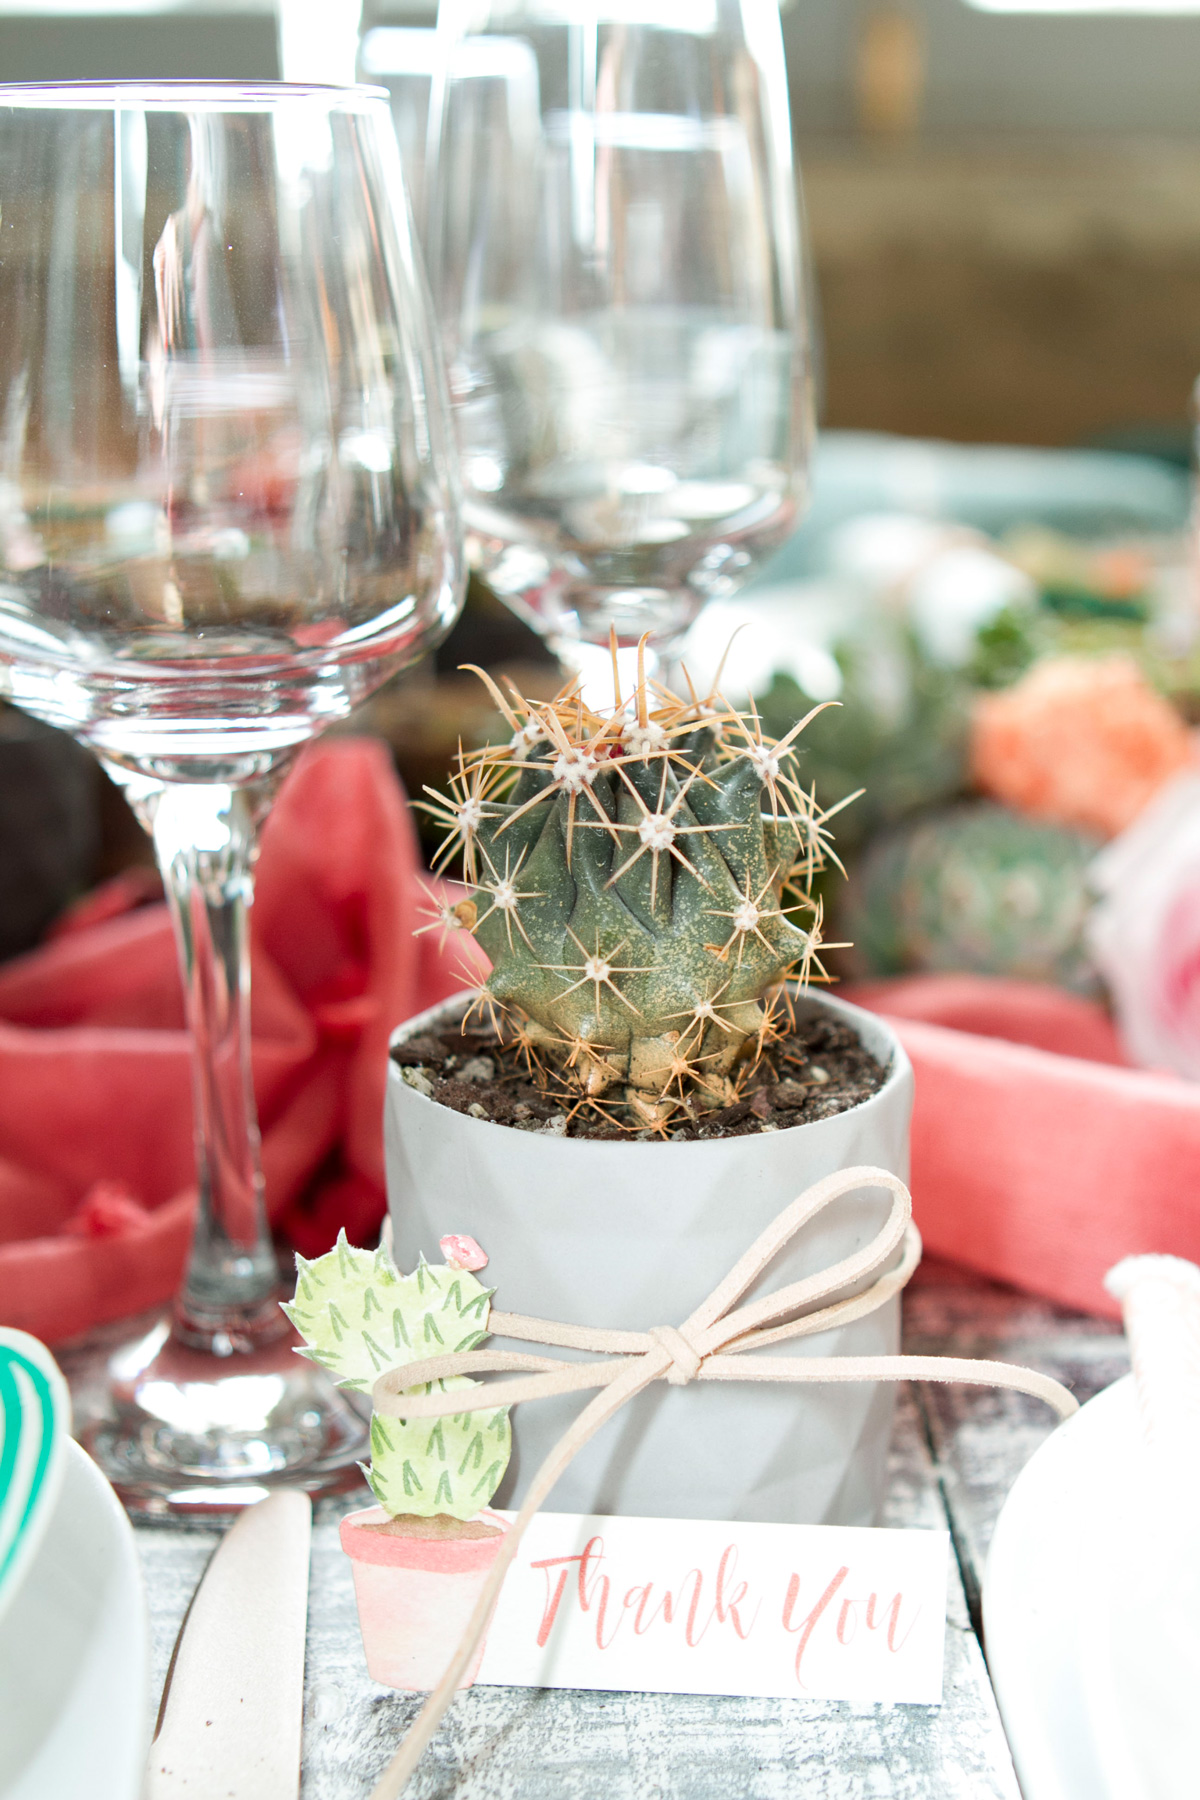 Cacti pots make a perfect gift for guests that add colour and texture during the event itself.